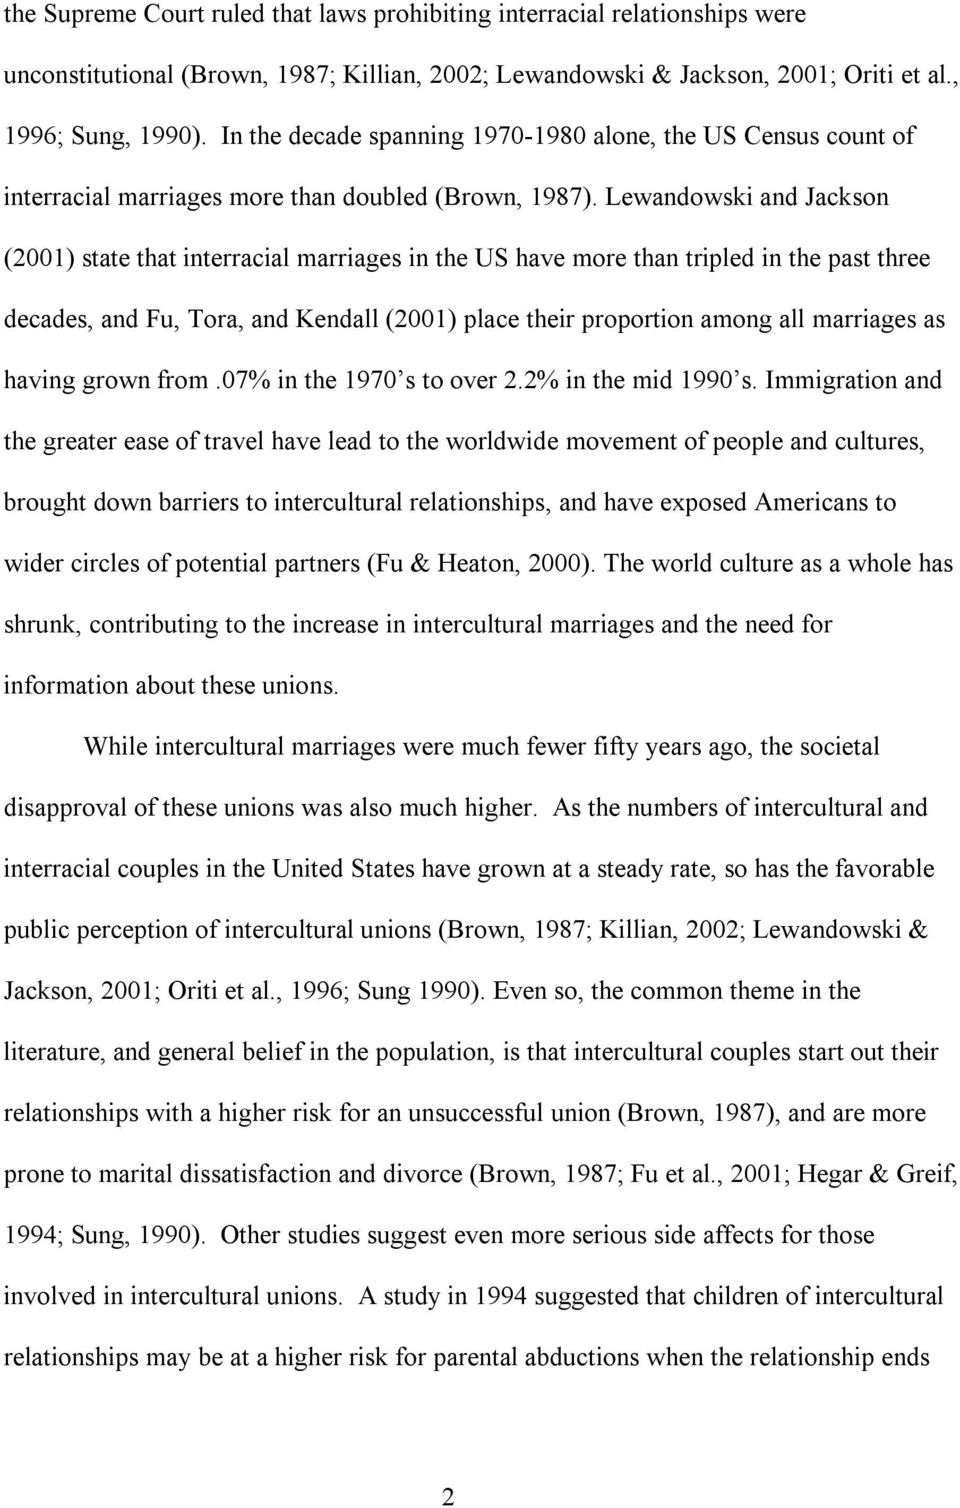 Lewandowski and Jackson (2001) state that interracial marriages in the US have more than tripled in the past three decades, and Fu, Tora, and Kendall (2001) place their proportion among all marriages